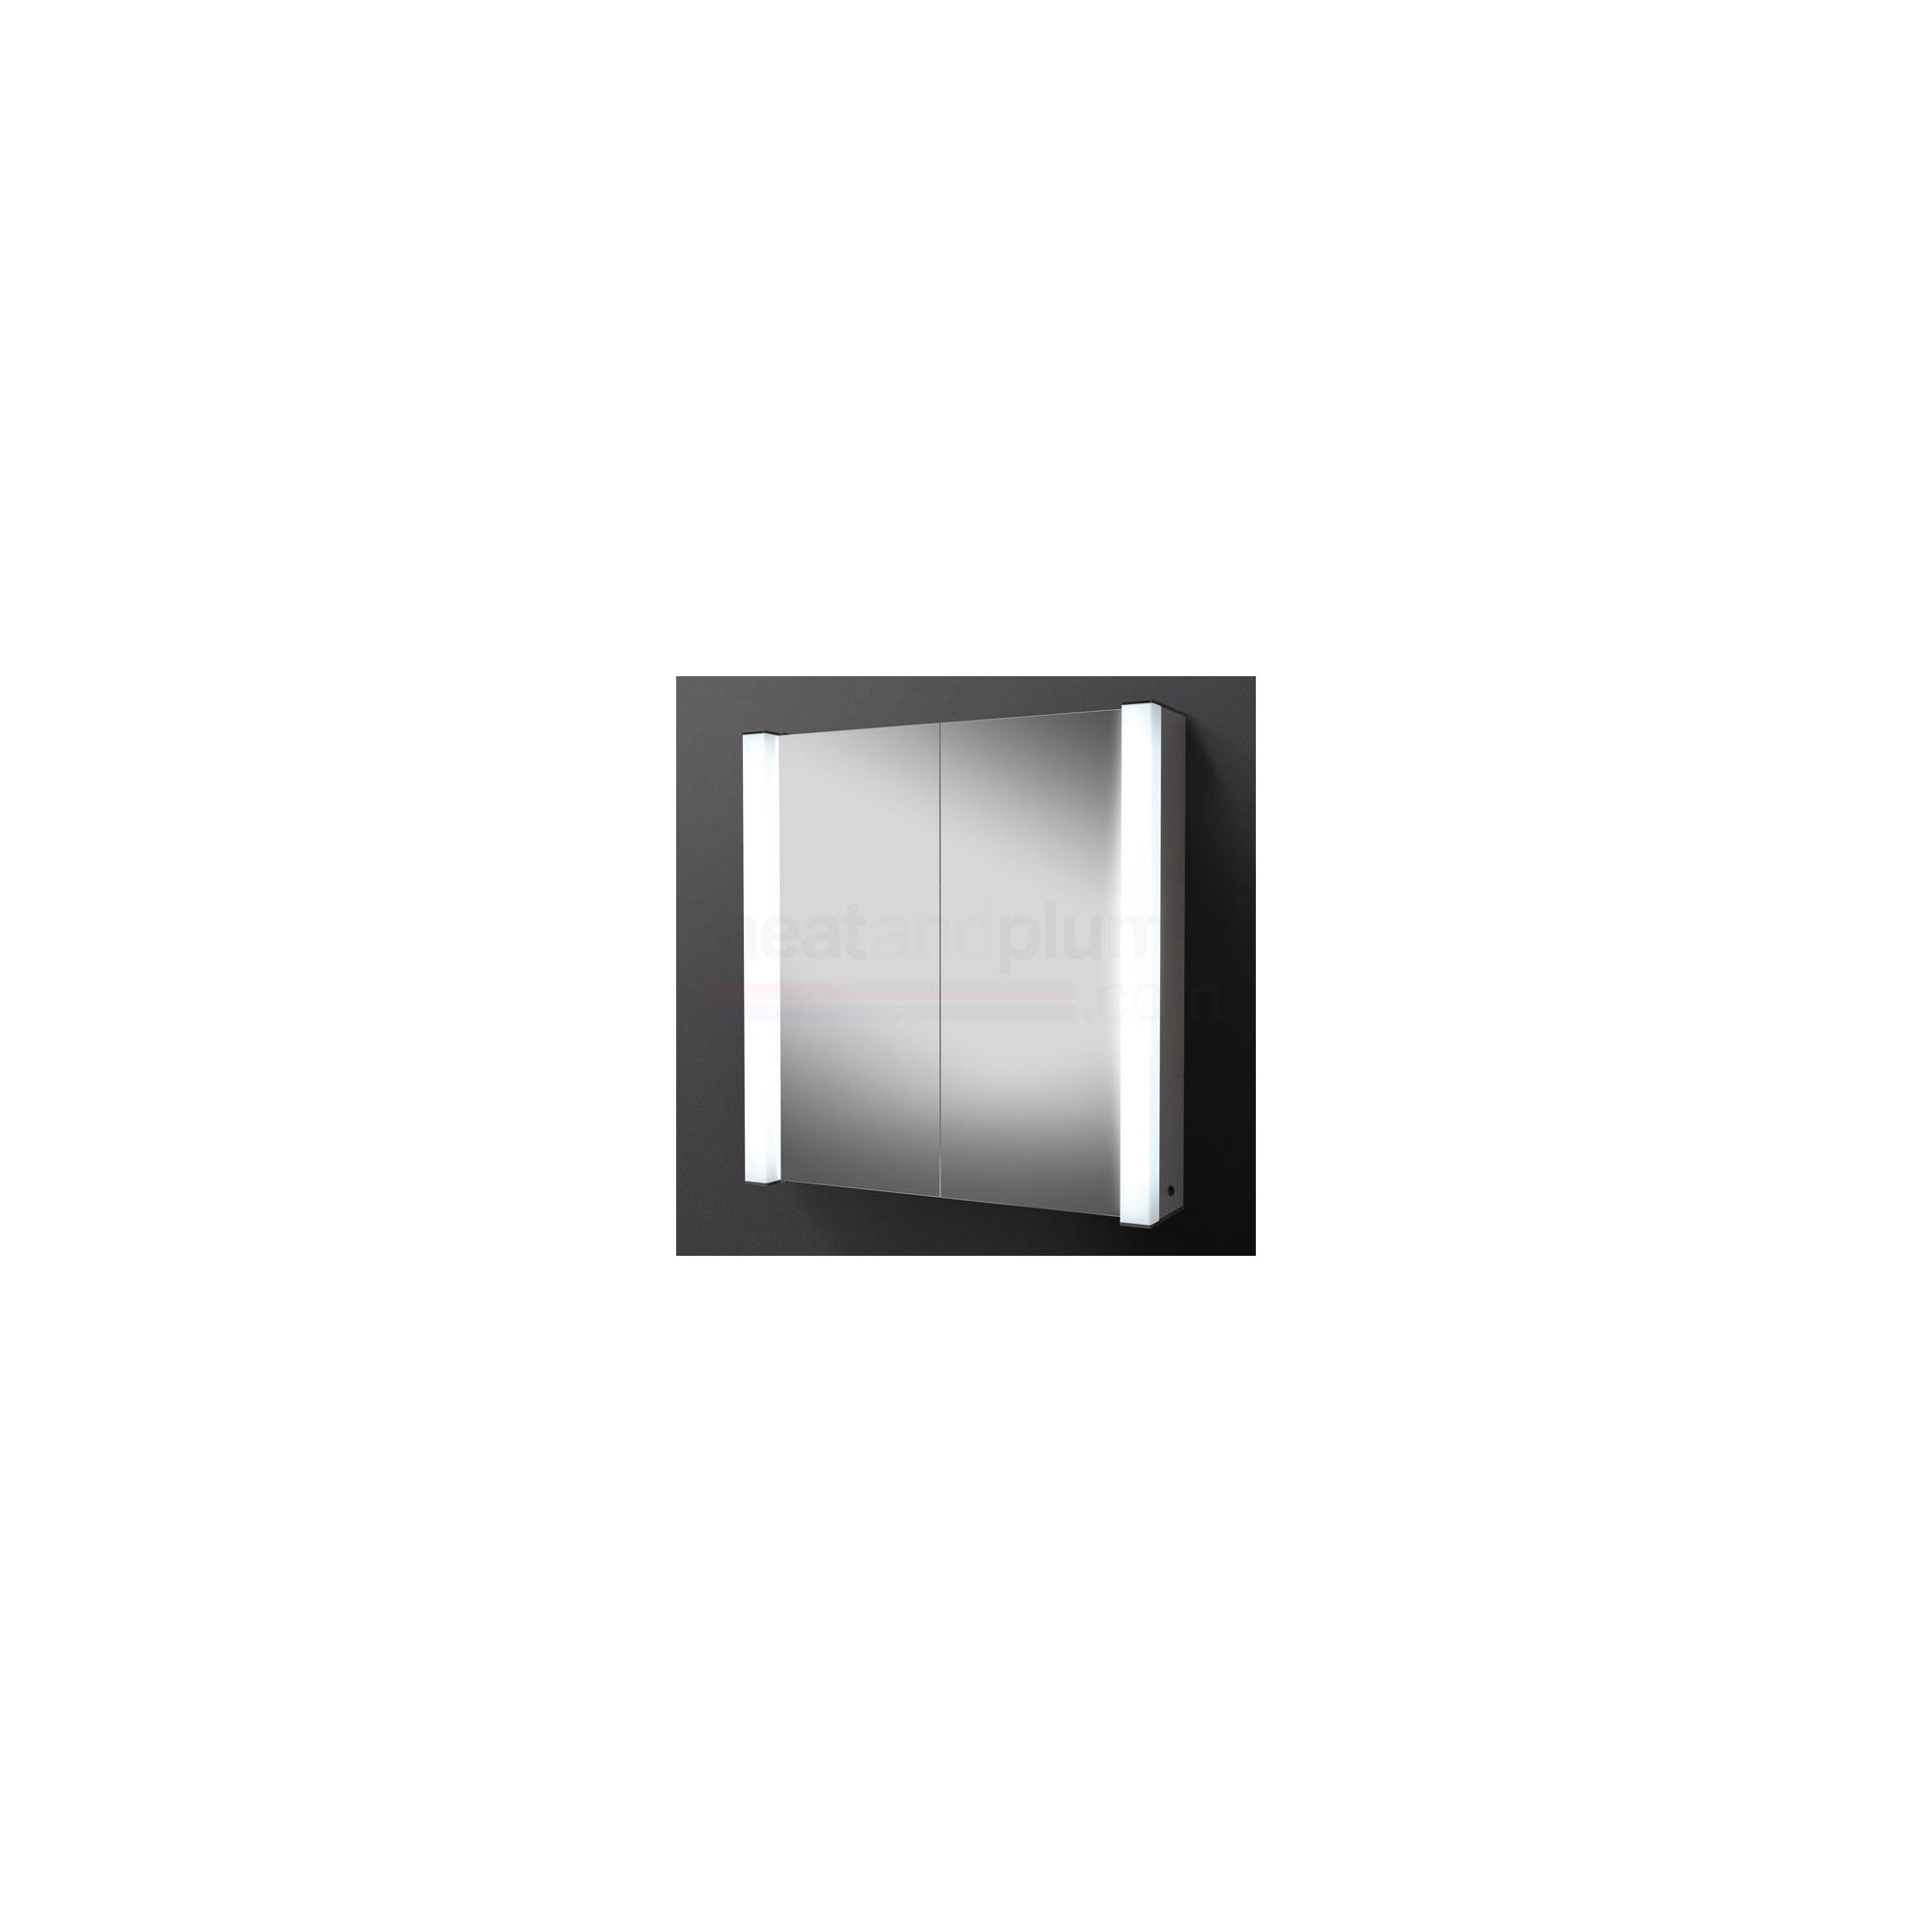 HiB Photec Aluminium Bathroom Cabinet 750mm High x 725mm Wide x 155mm Deep